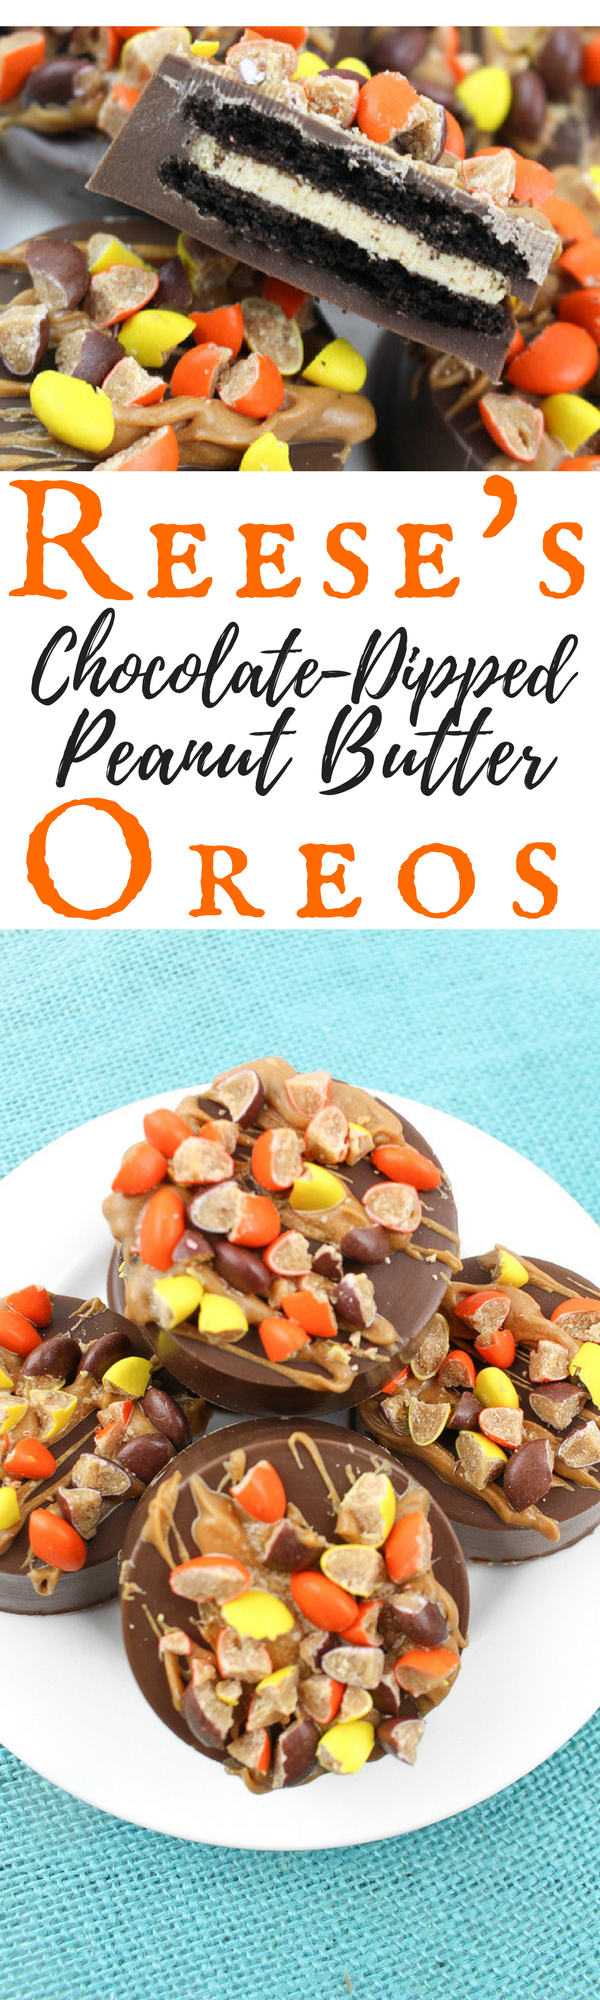 When the flavors of these Reese's Chocolate Dipped Peanut Butter Oreos hit your tongue, all will be well with the world. At least until you're done eating them.